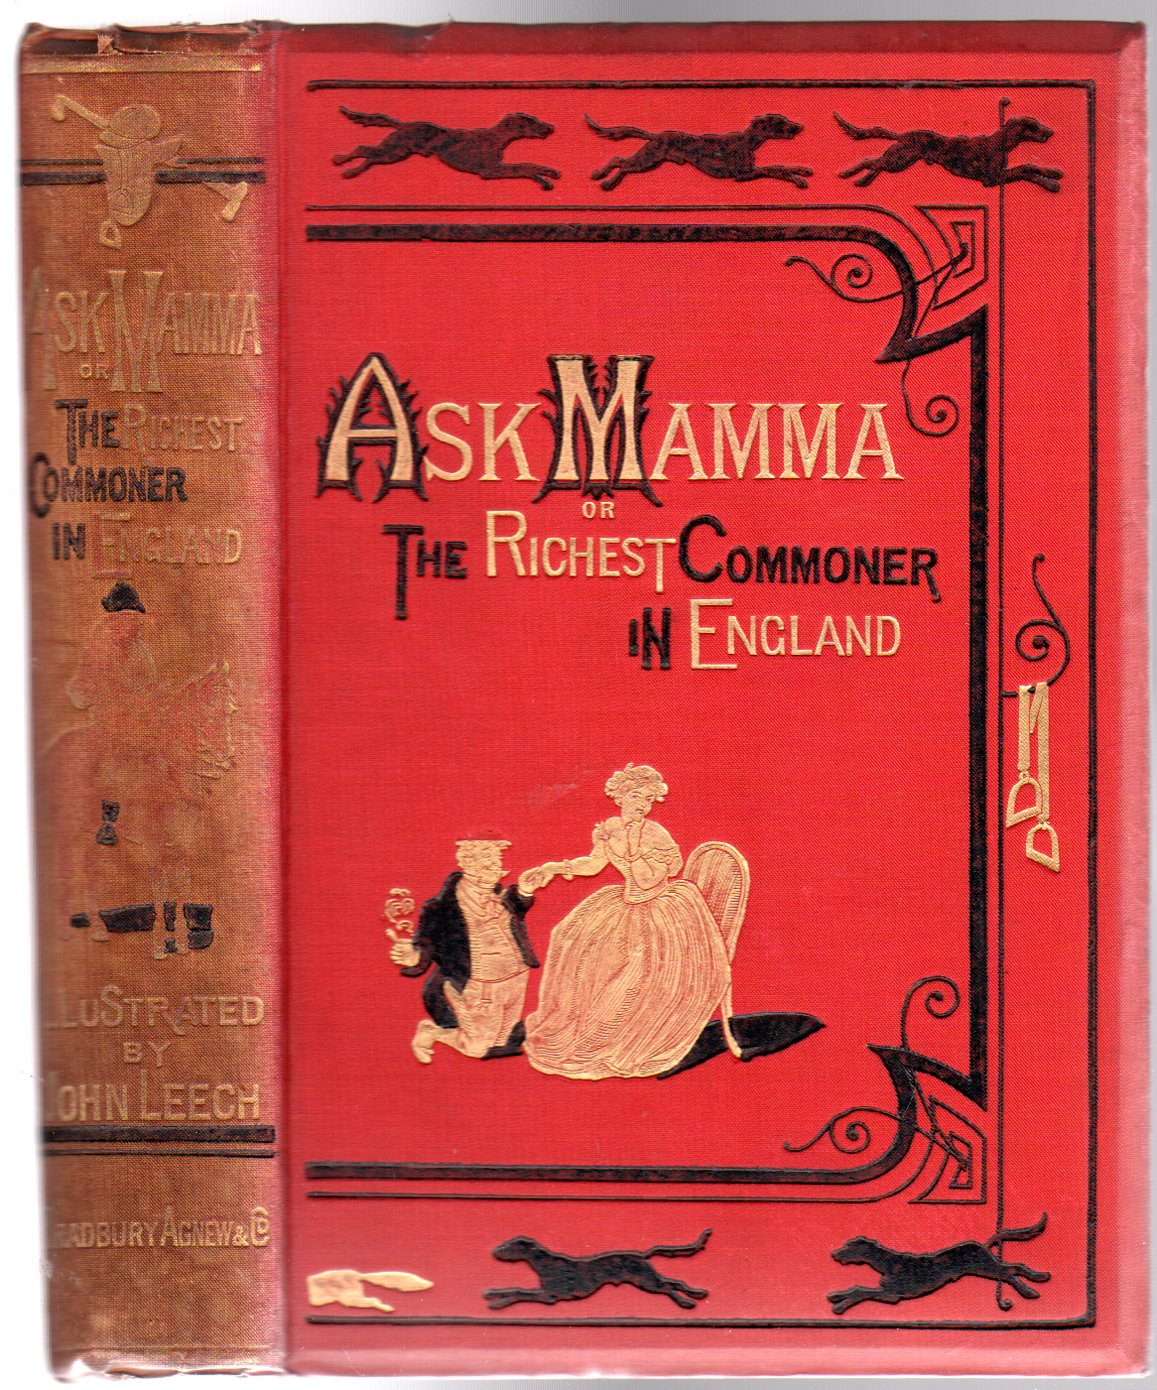 Image for Ask Mamma or the Richest Commoner in England